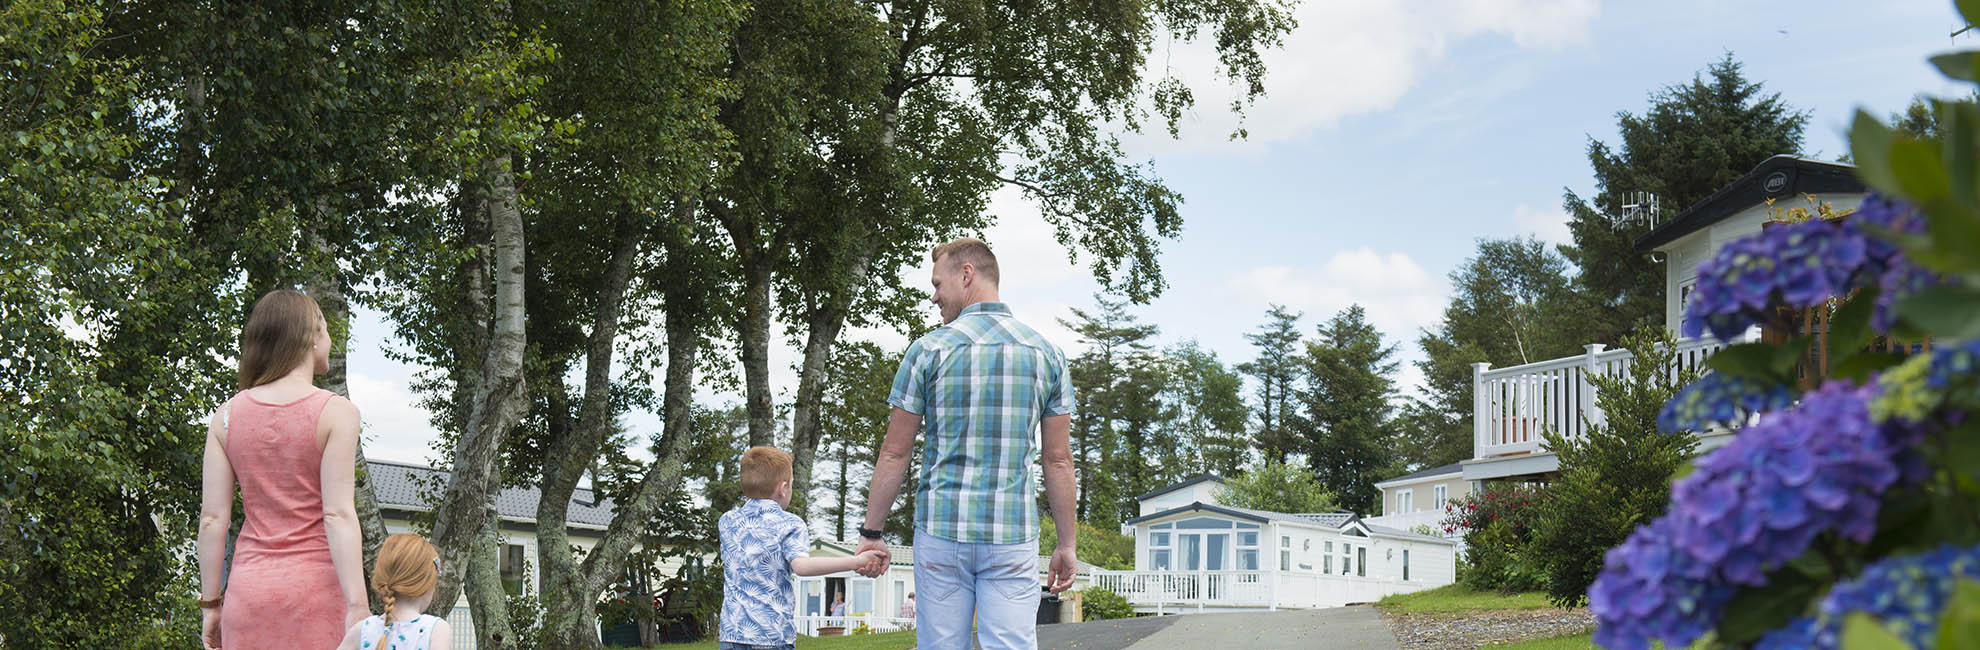 A family walking towards their lodge on a Parkdean Resorts Holiday Park in Wales